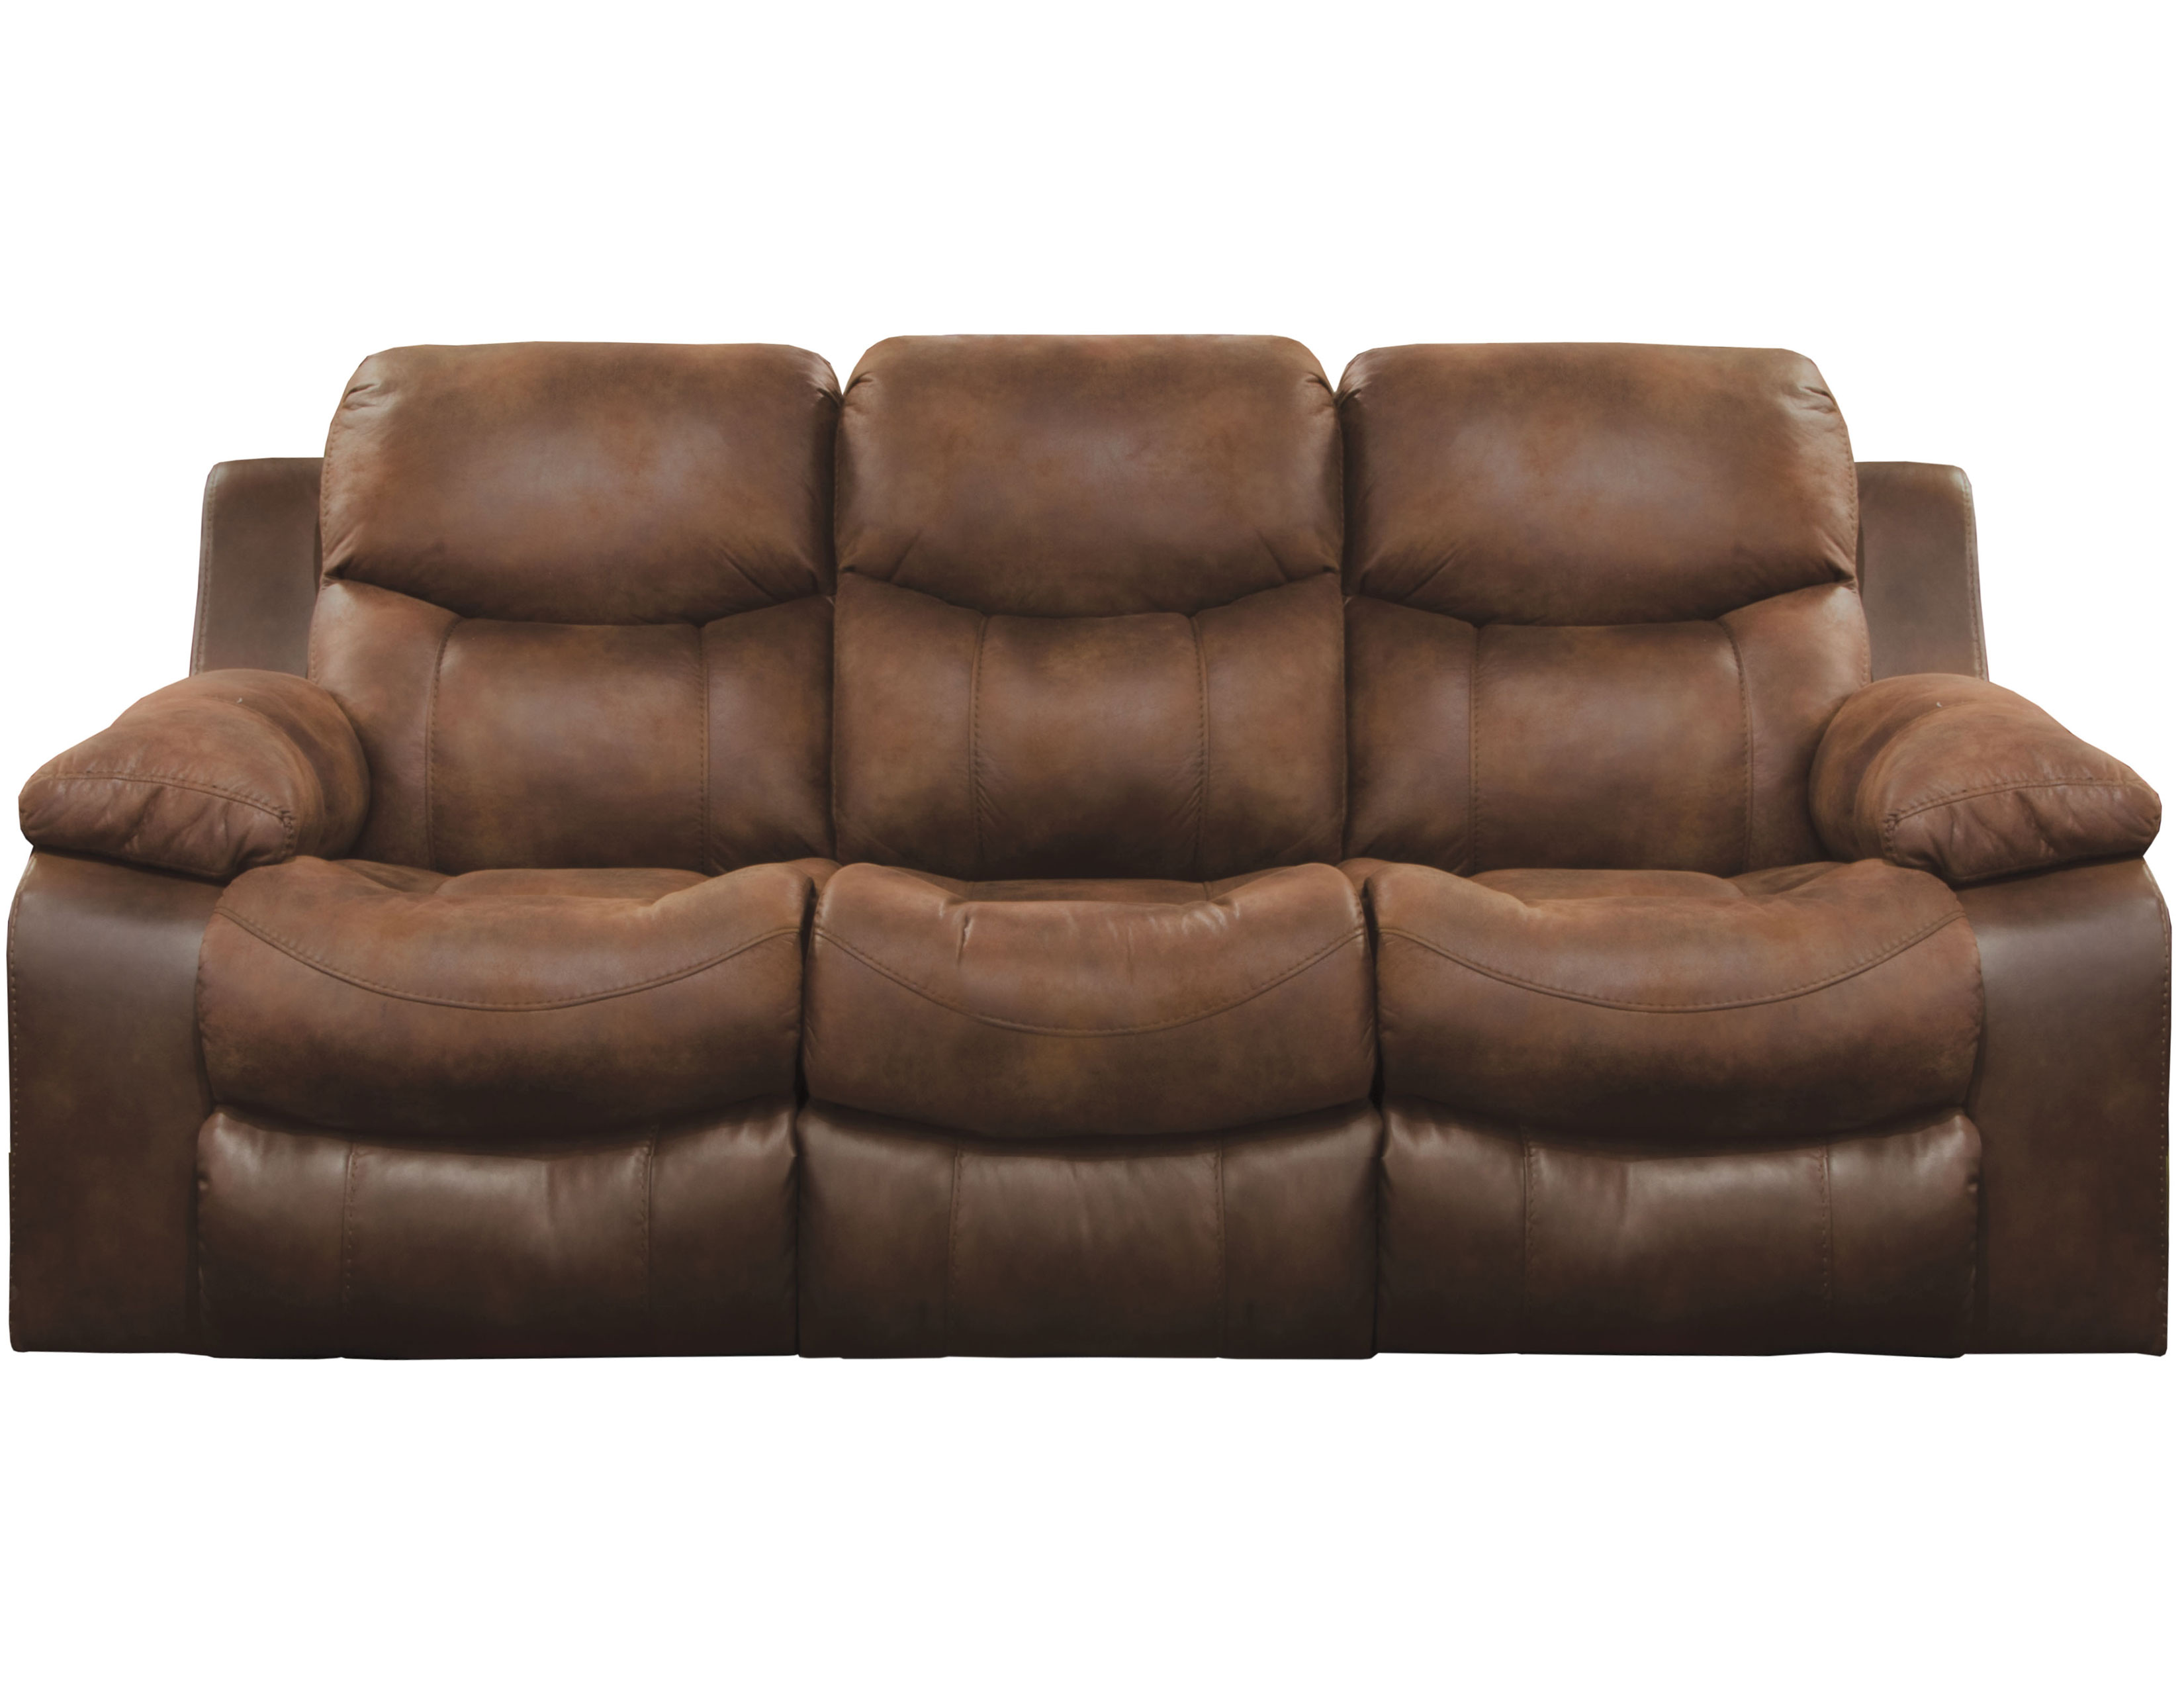 Brilliant Henderson 90 Reclining Sofa W Drop Down Sofas And Sectionals Gmtry Best Dining Table And Chair Ideas Images Gmtryco